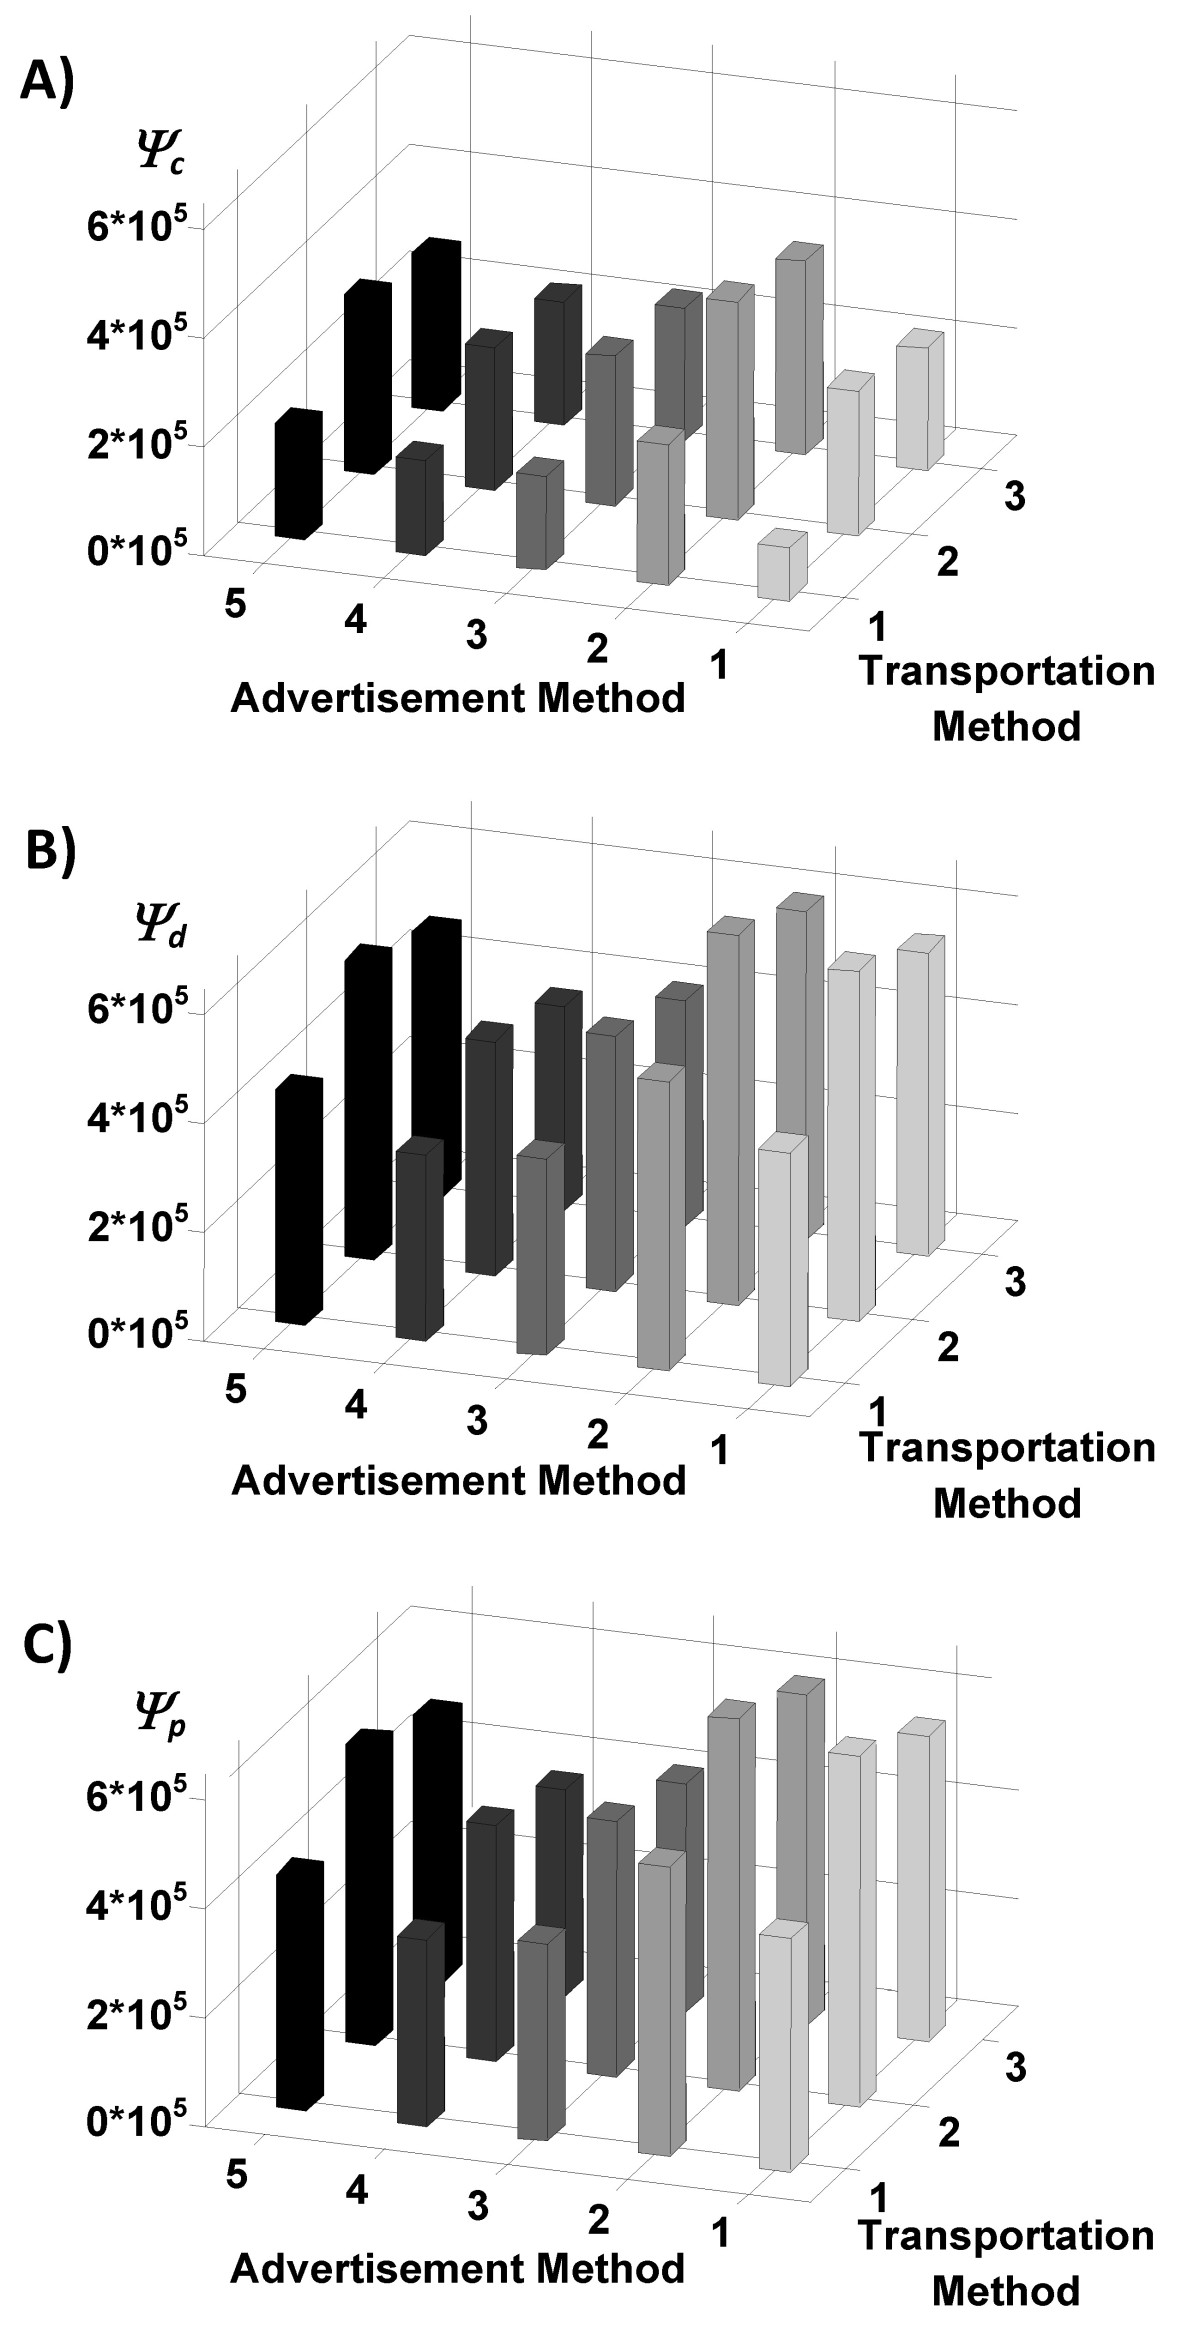 http://static-content.springer.com/image/art%3A10.1186%2F2210-4690-1-1/MediaObjects/13243_2010_Article_1_Fig3_HTML.jpg